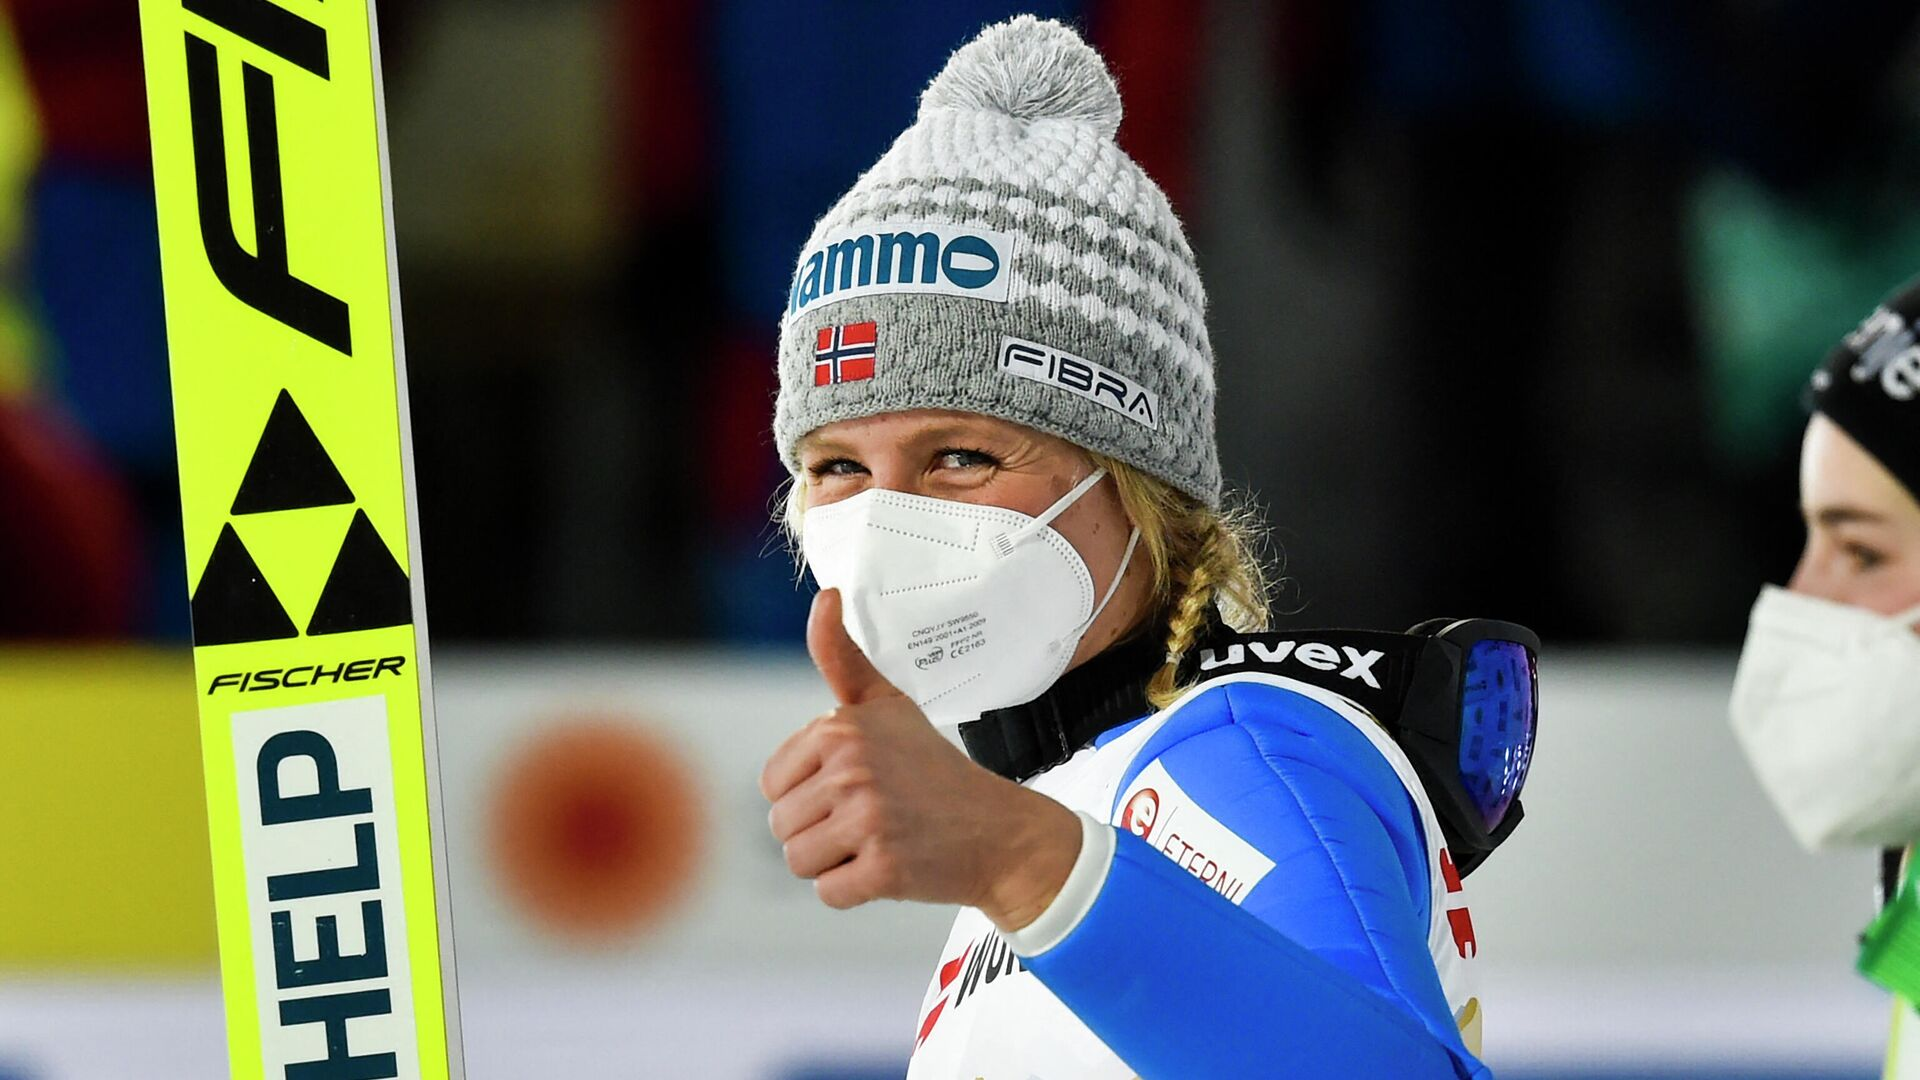 Norway's Maren Lundby give a thumbs up after winning the women's HS137 large hill jumping event at the FIS Nordic Ski World Championships in Oberstdorf, southern Germany, on March 3, 2021. (Photo by Christof Stache / AFP) - РИА Новости, 1920, 03.03.2021